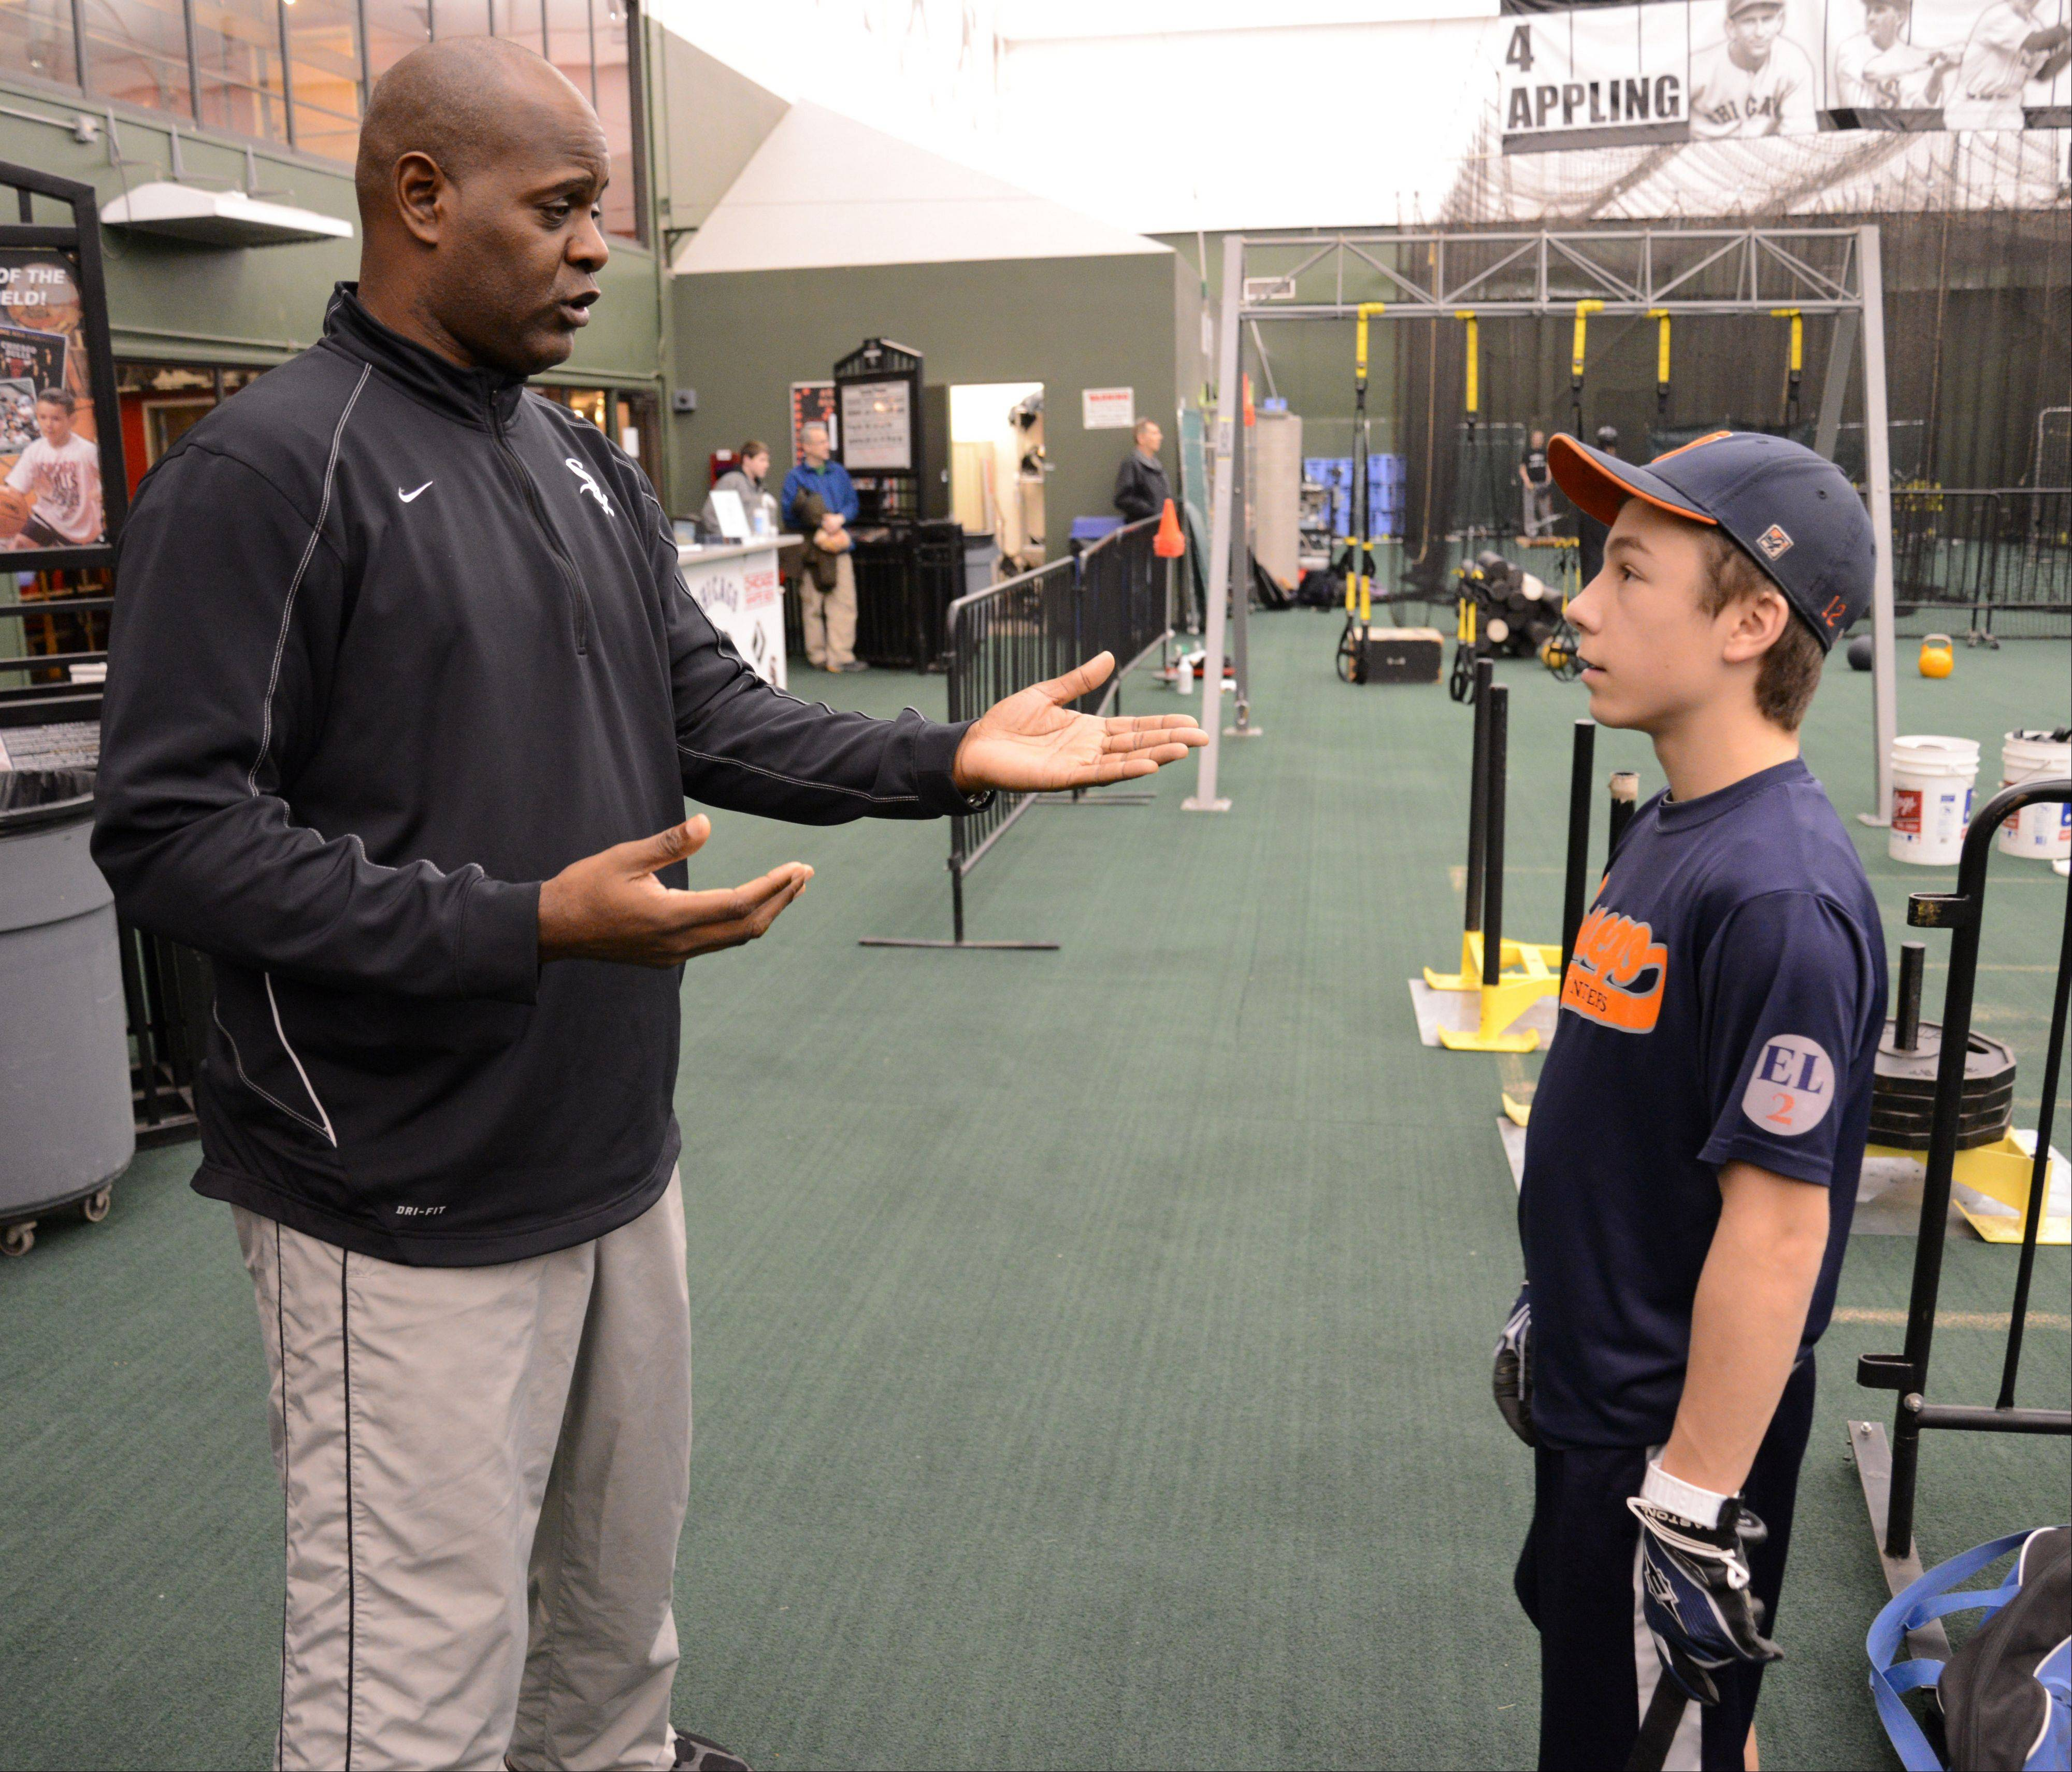 Coach Daryl Boston of the White Sox chats with Mitchell Gwodz, 14, of Oswego during a visit to the Bulls/Sox Academy in Lisle. During a visit Wednesday, Boston watched young players practice and gave them a little coaching.